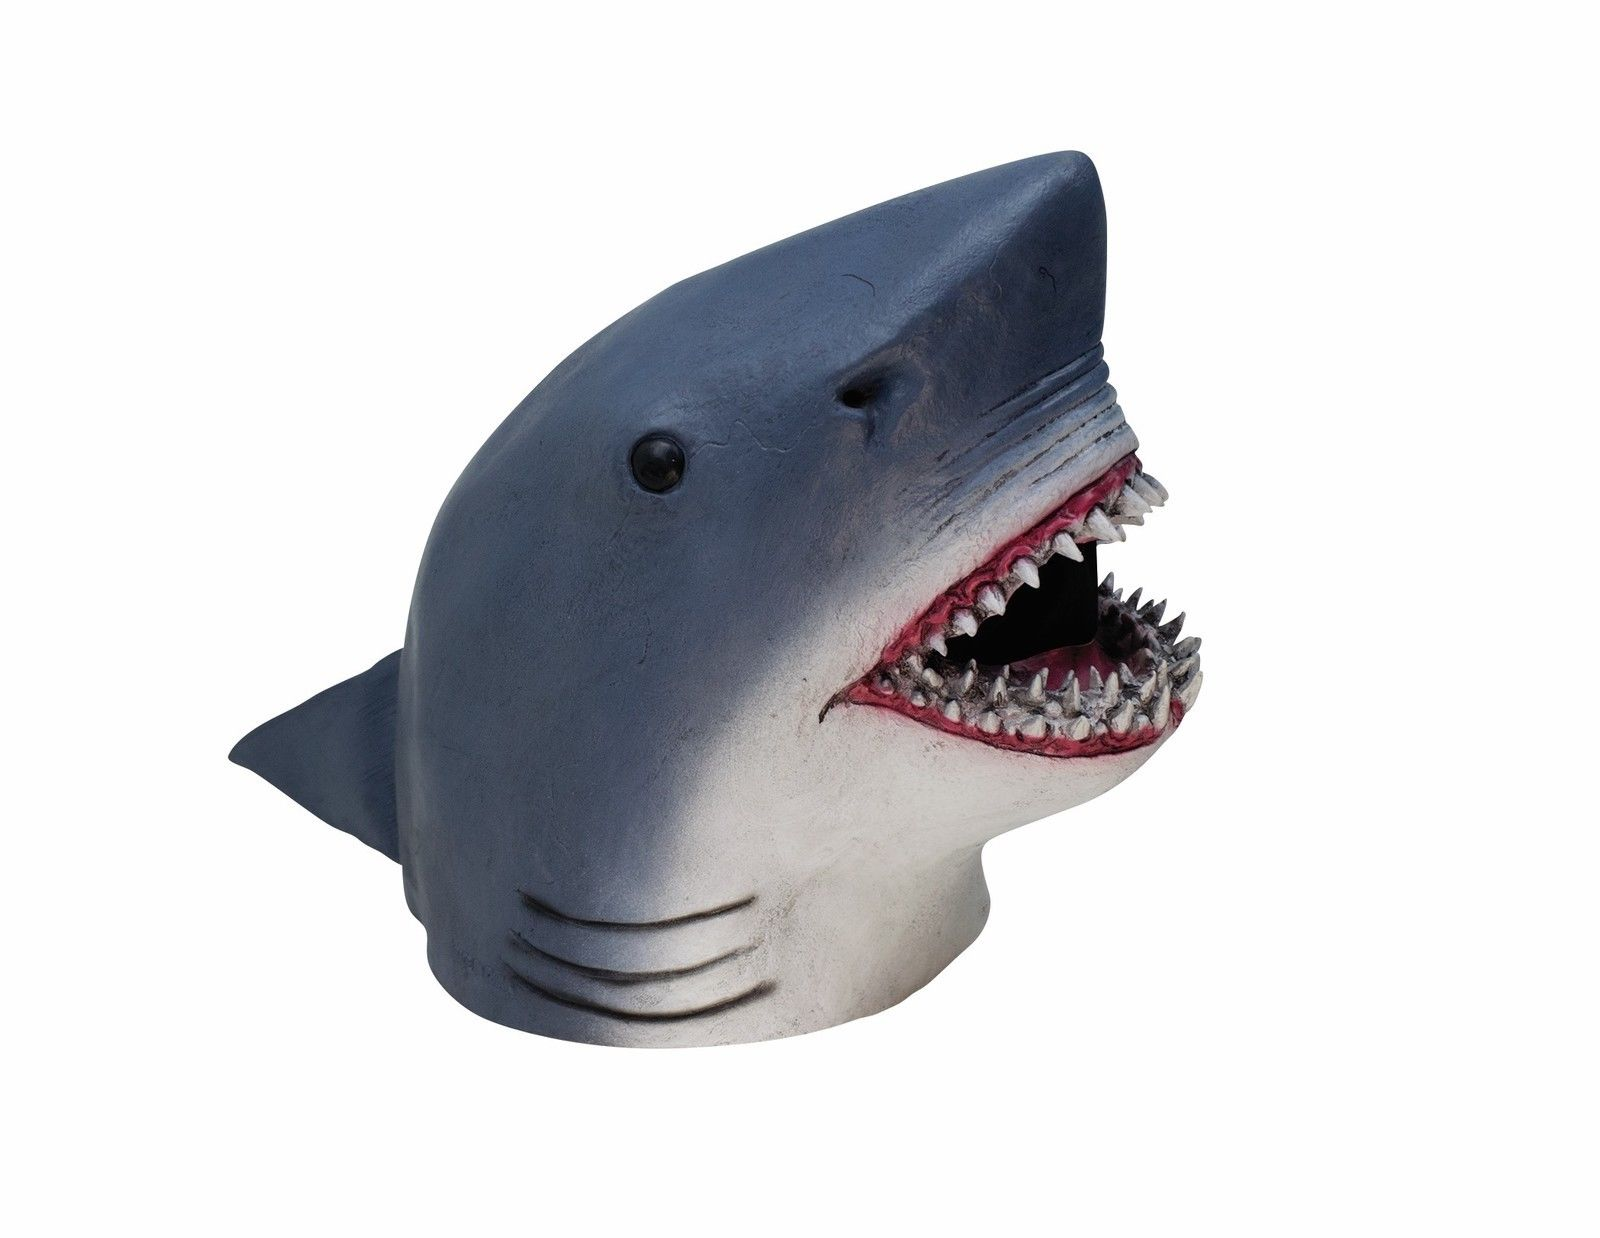 adult shark head week mask latex ocean animal halloween costume accessory jaws - Halloween Costume Shark